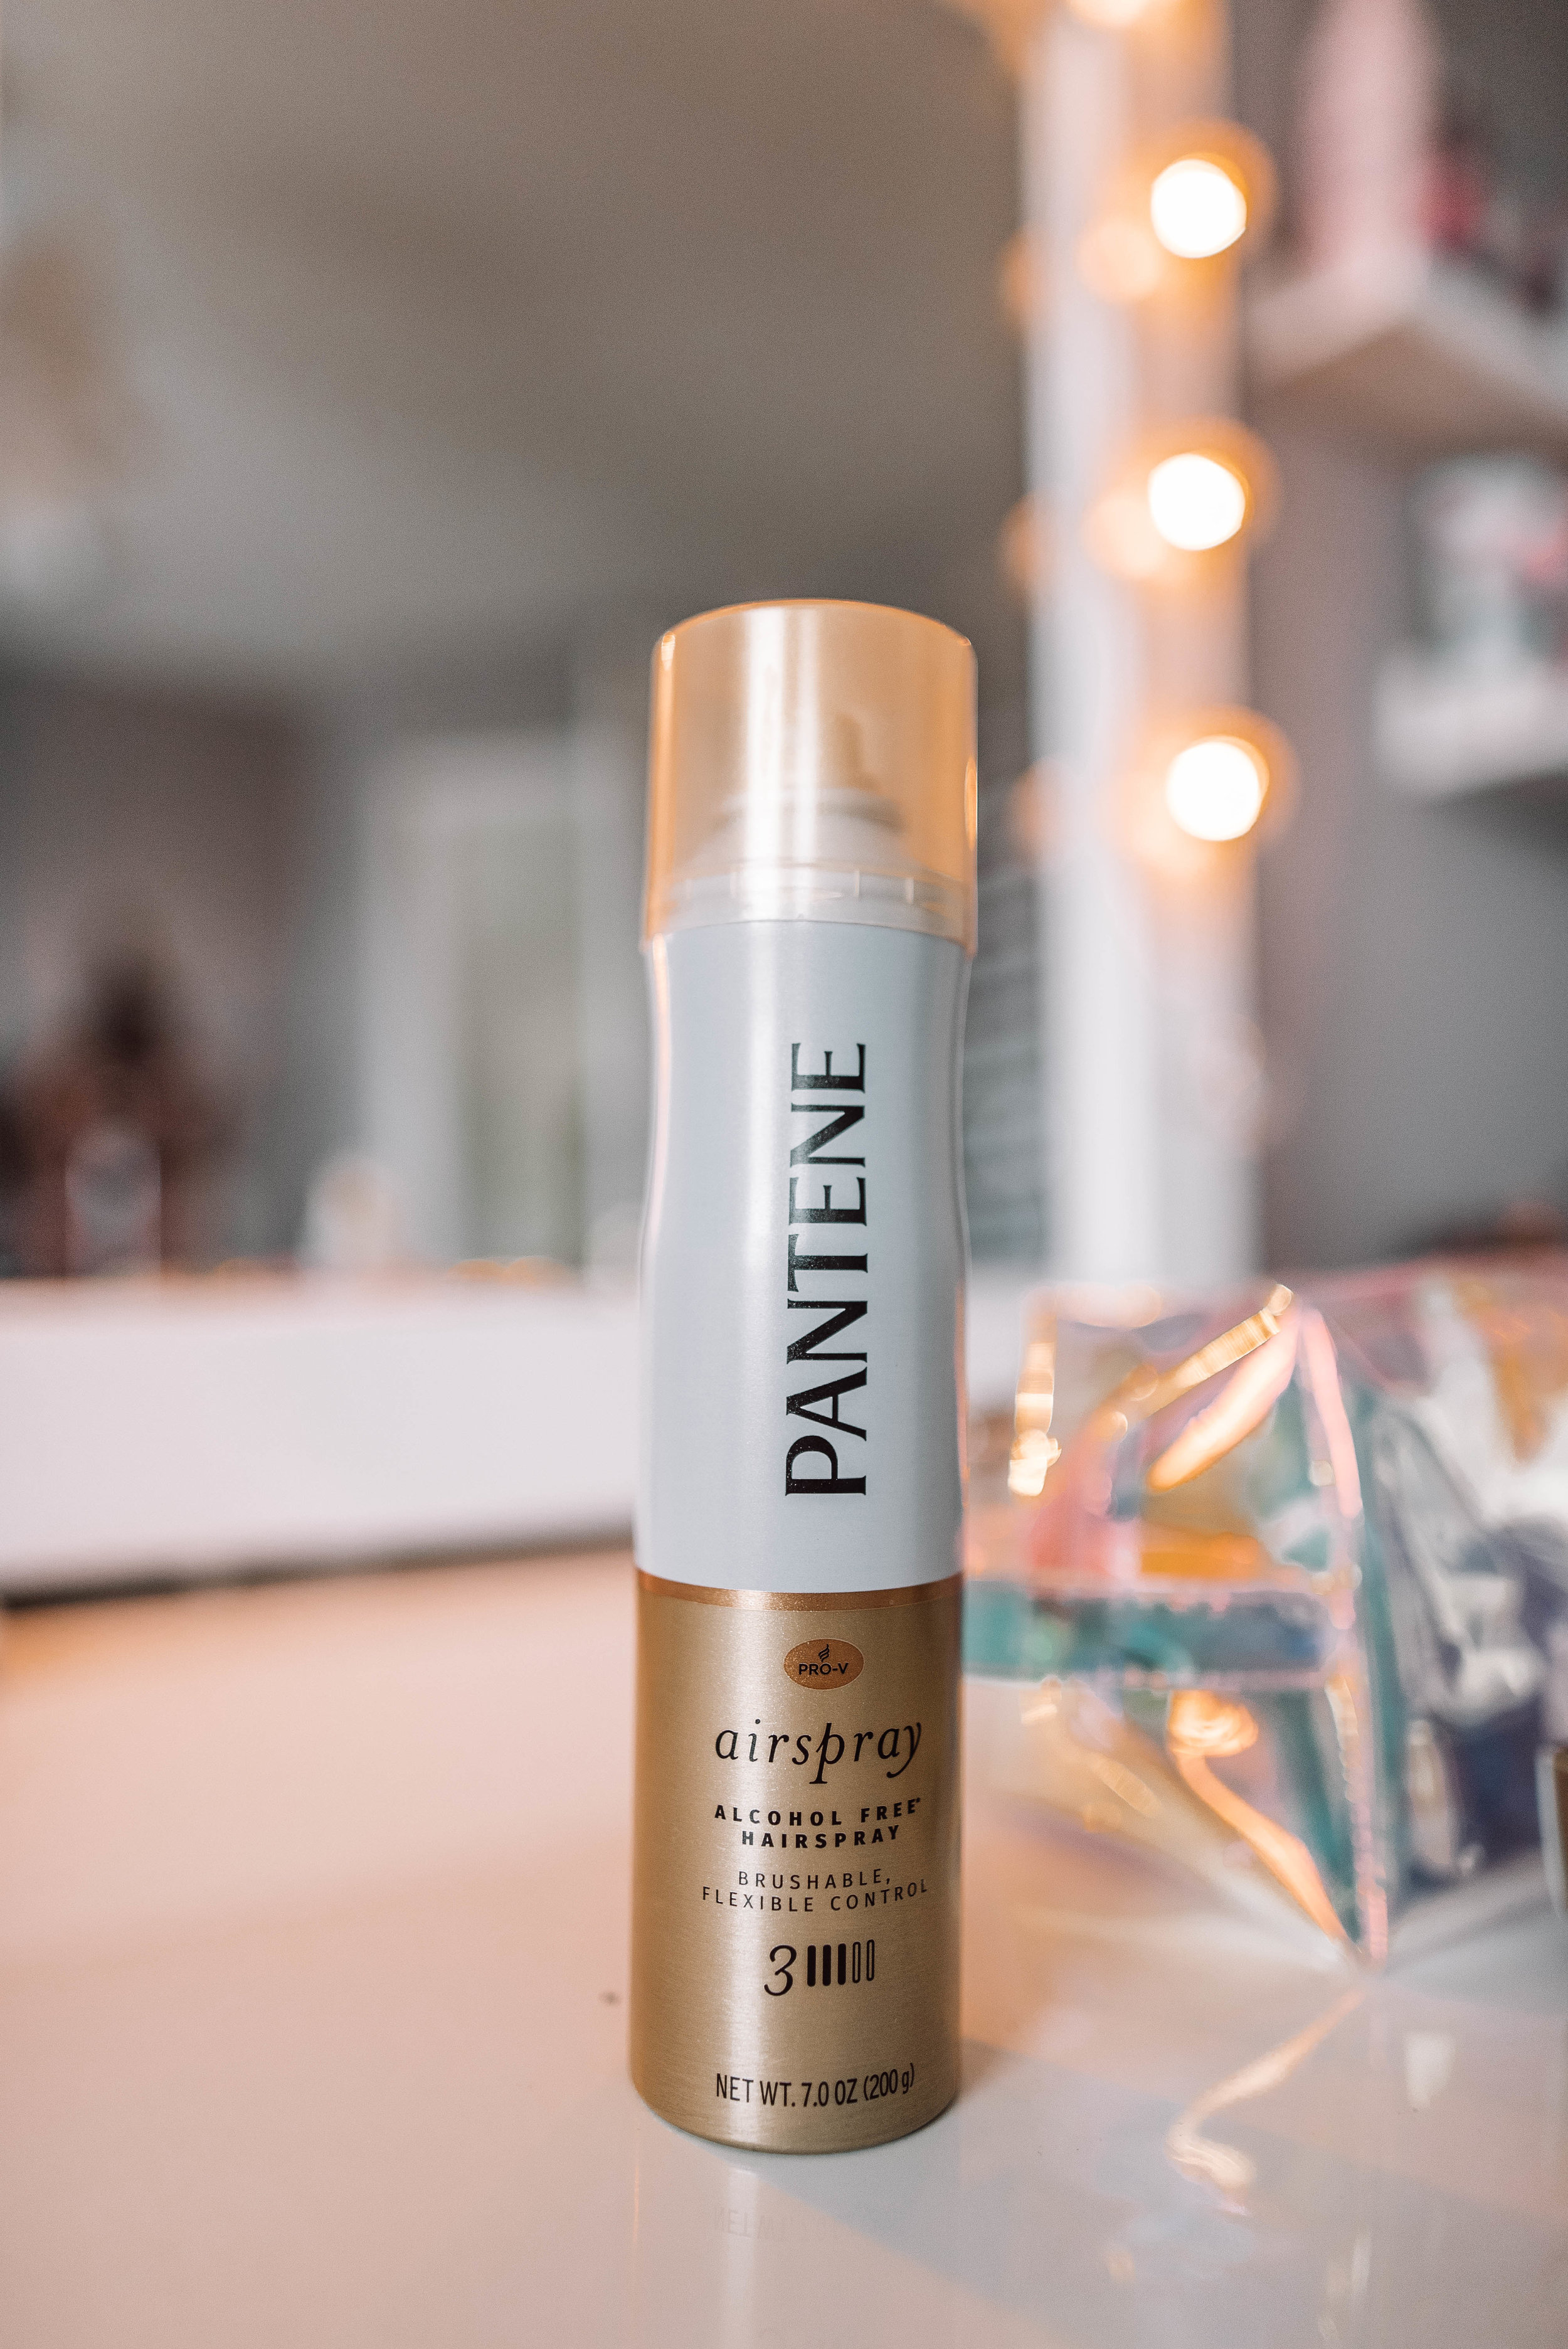 Pantene's Airspray - Not only does Pantene's Airspray act as a hairspray by providing a strong hold, but it also locks out humidity, adds shine, and controls frizz. This can be used to set your look in place before you head out and can also be used to touch up throughout the day! Oh, and did I mention it's alcohol-free?